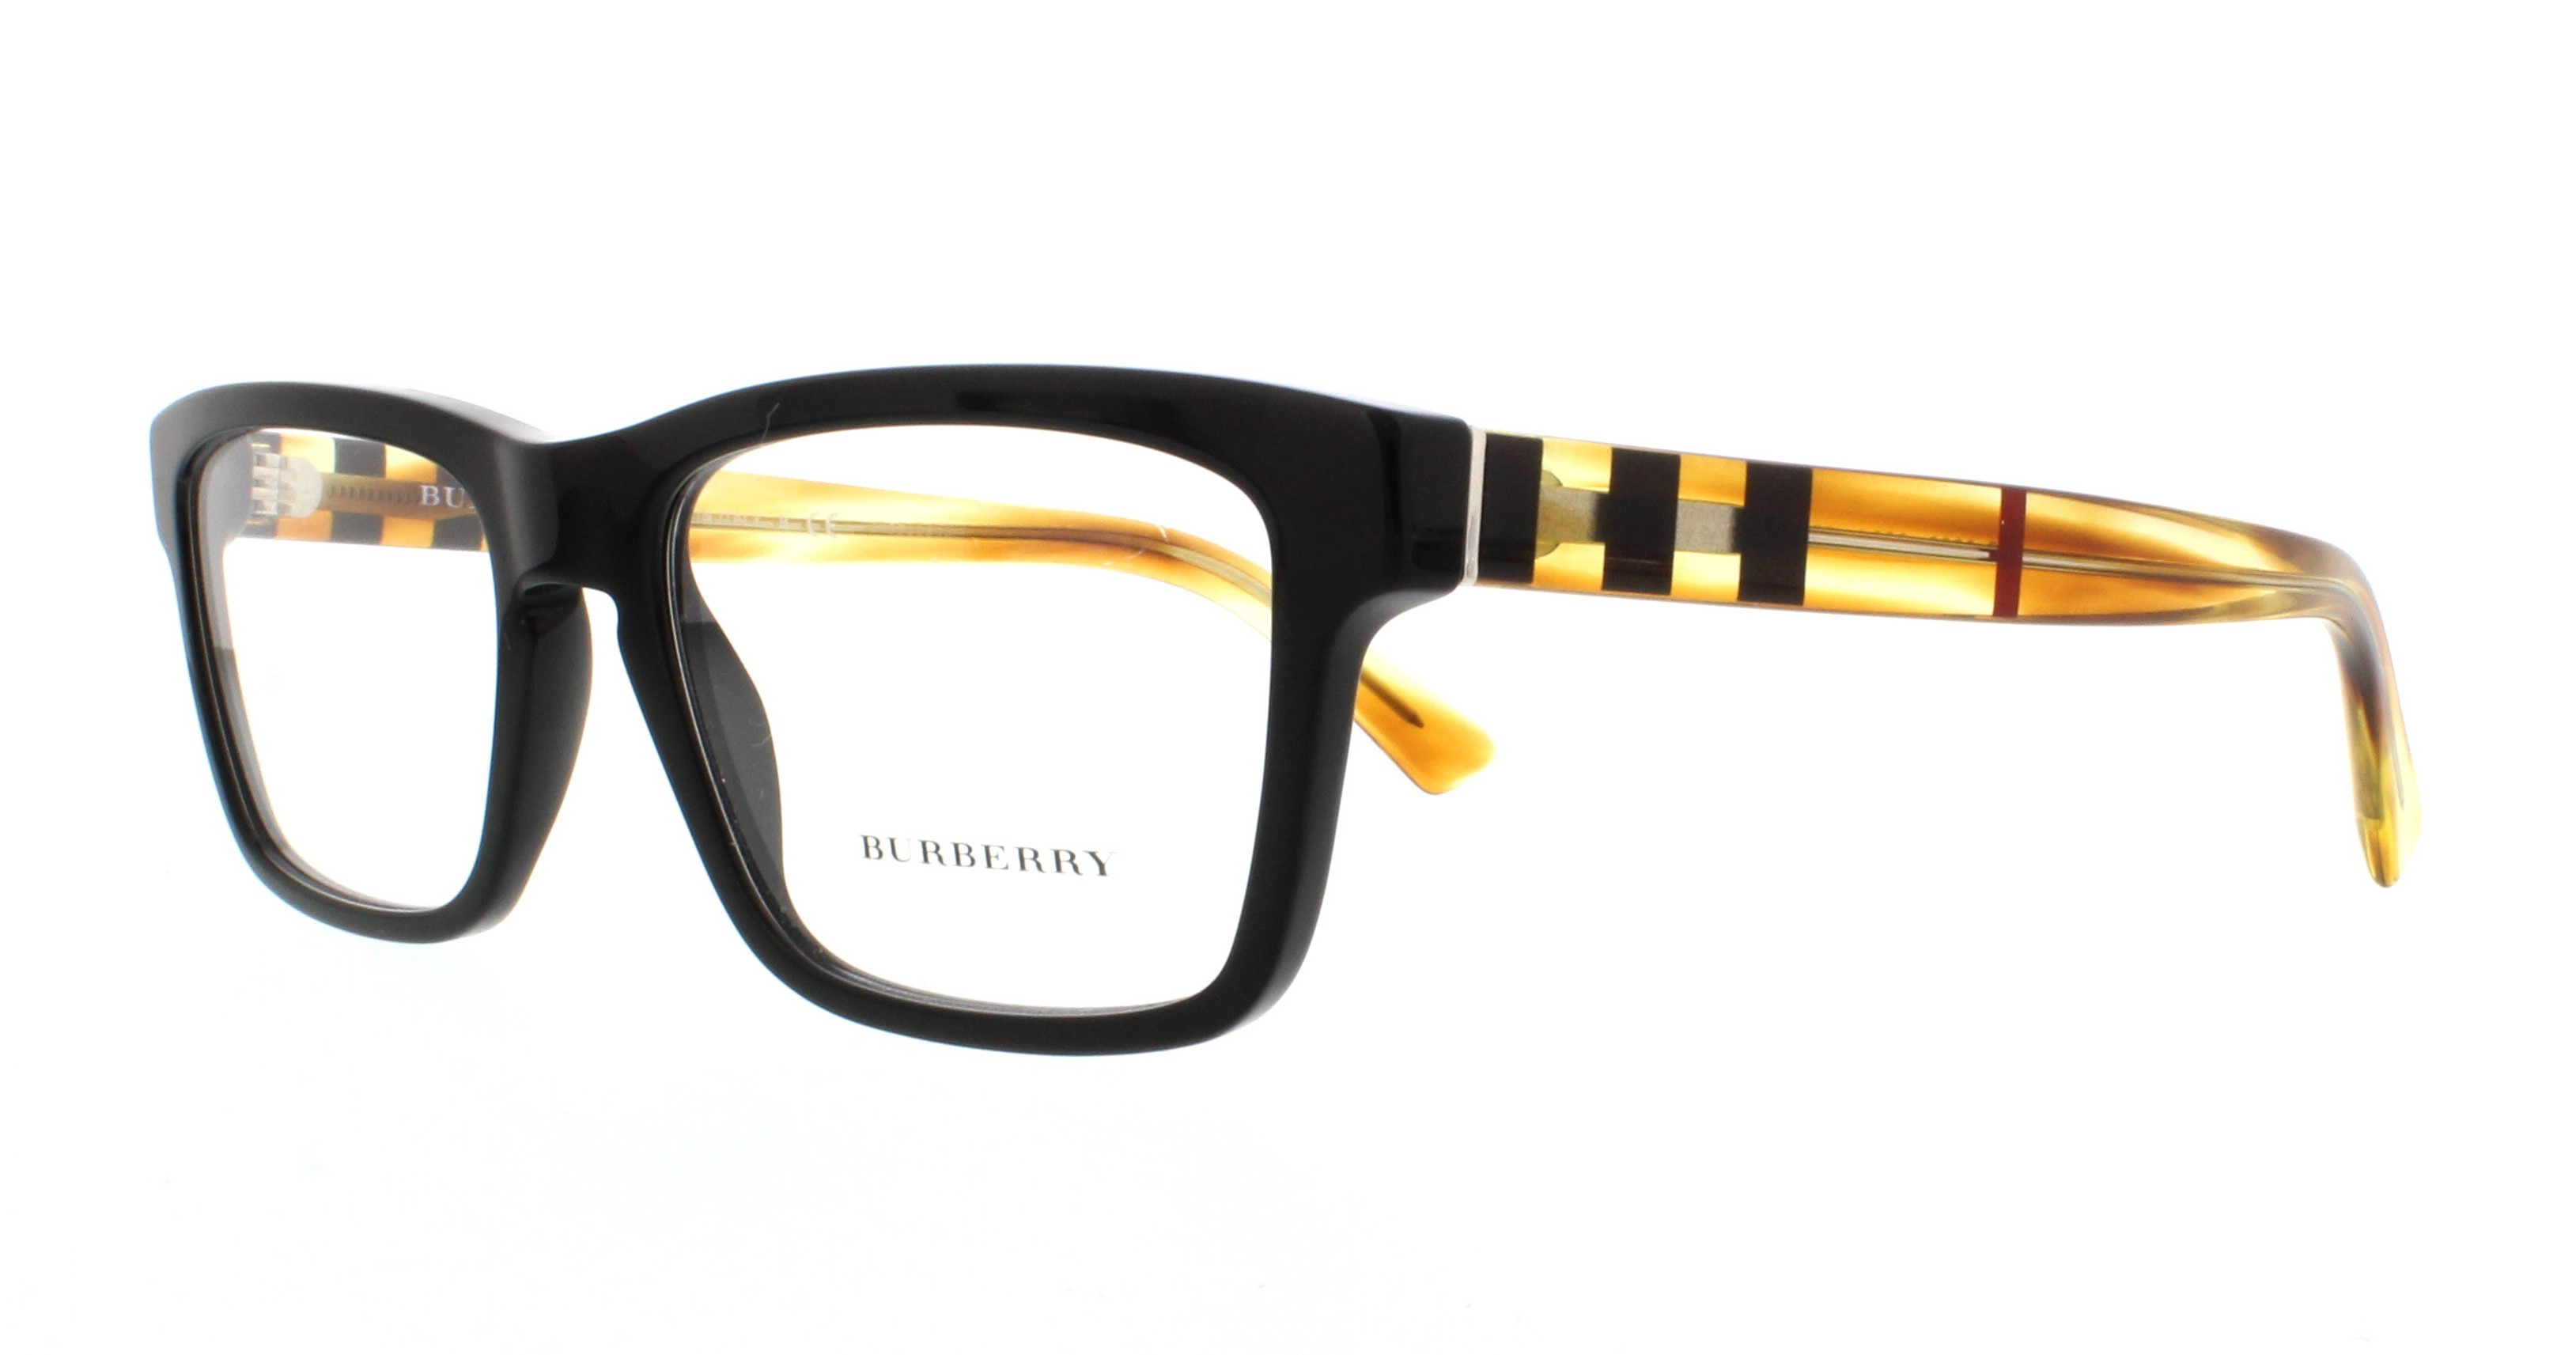 489909c991 Burberry Designer Glasses - Best Glasses Cnapracticetesting.Com 2018